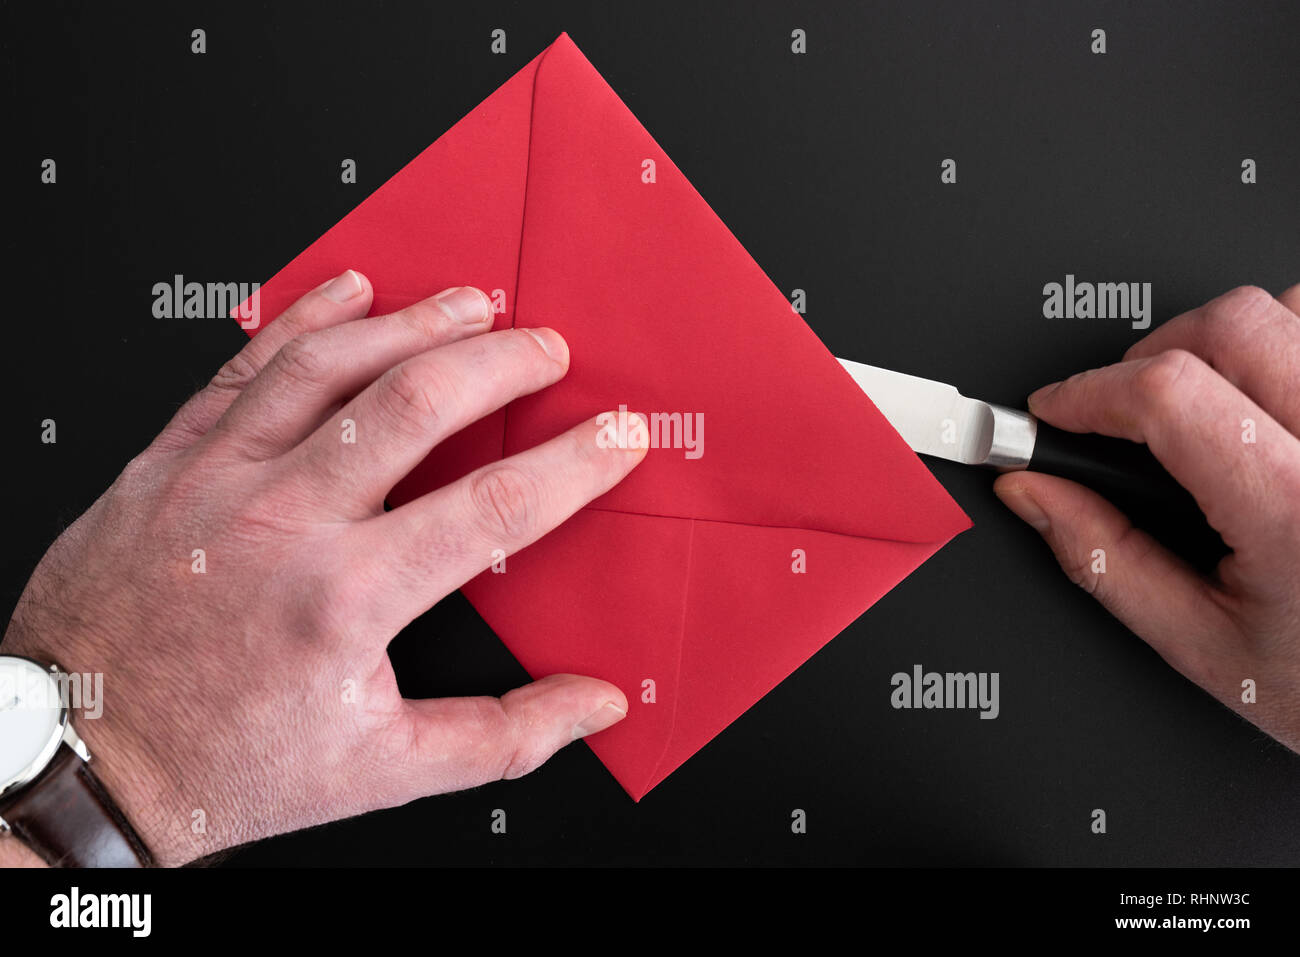 hands of man opening red envelope with paper knife - Stock Image